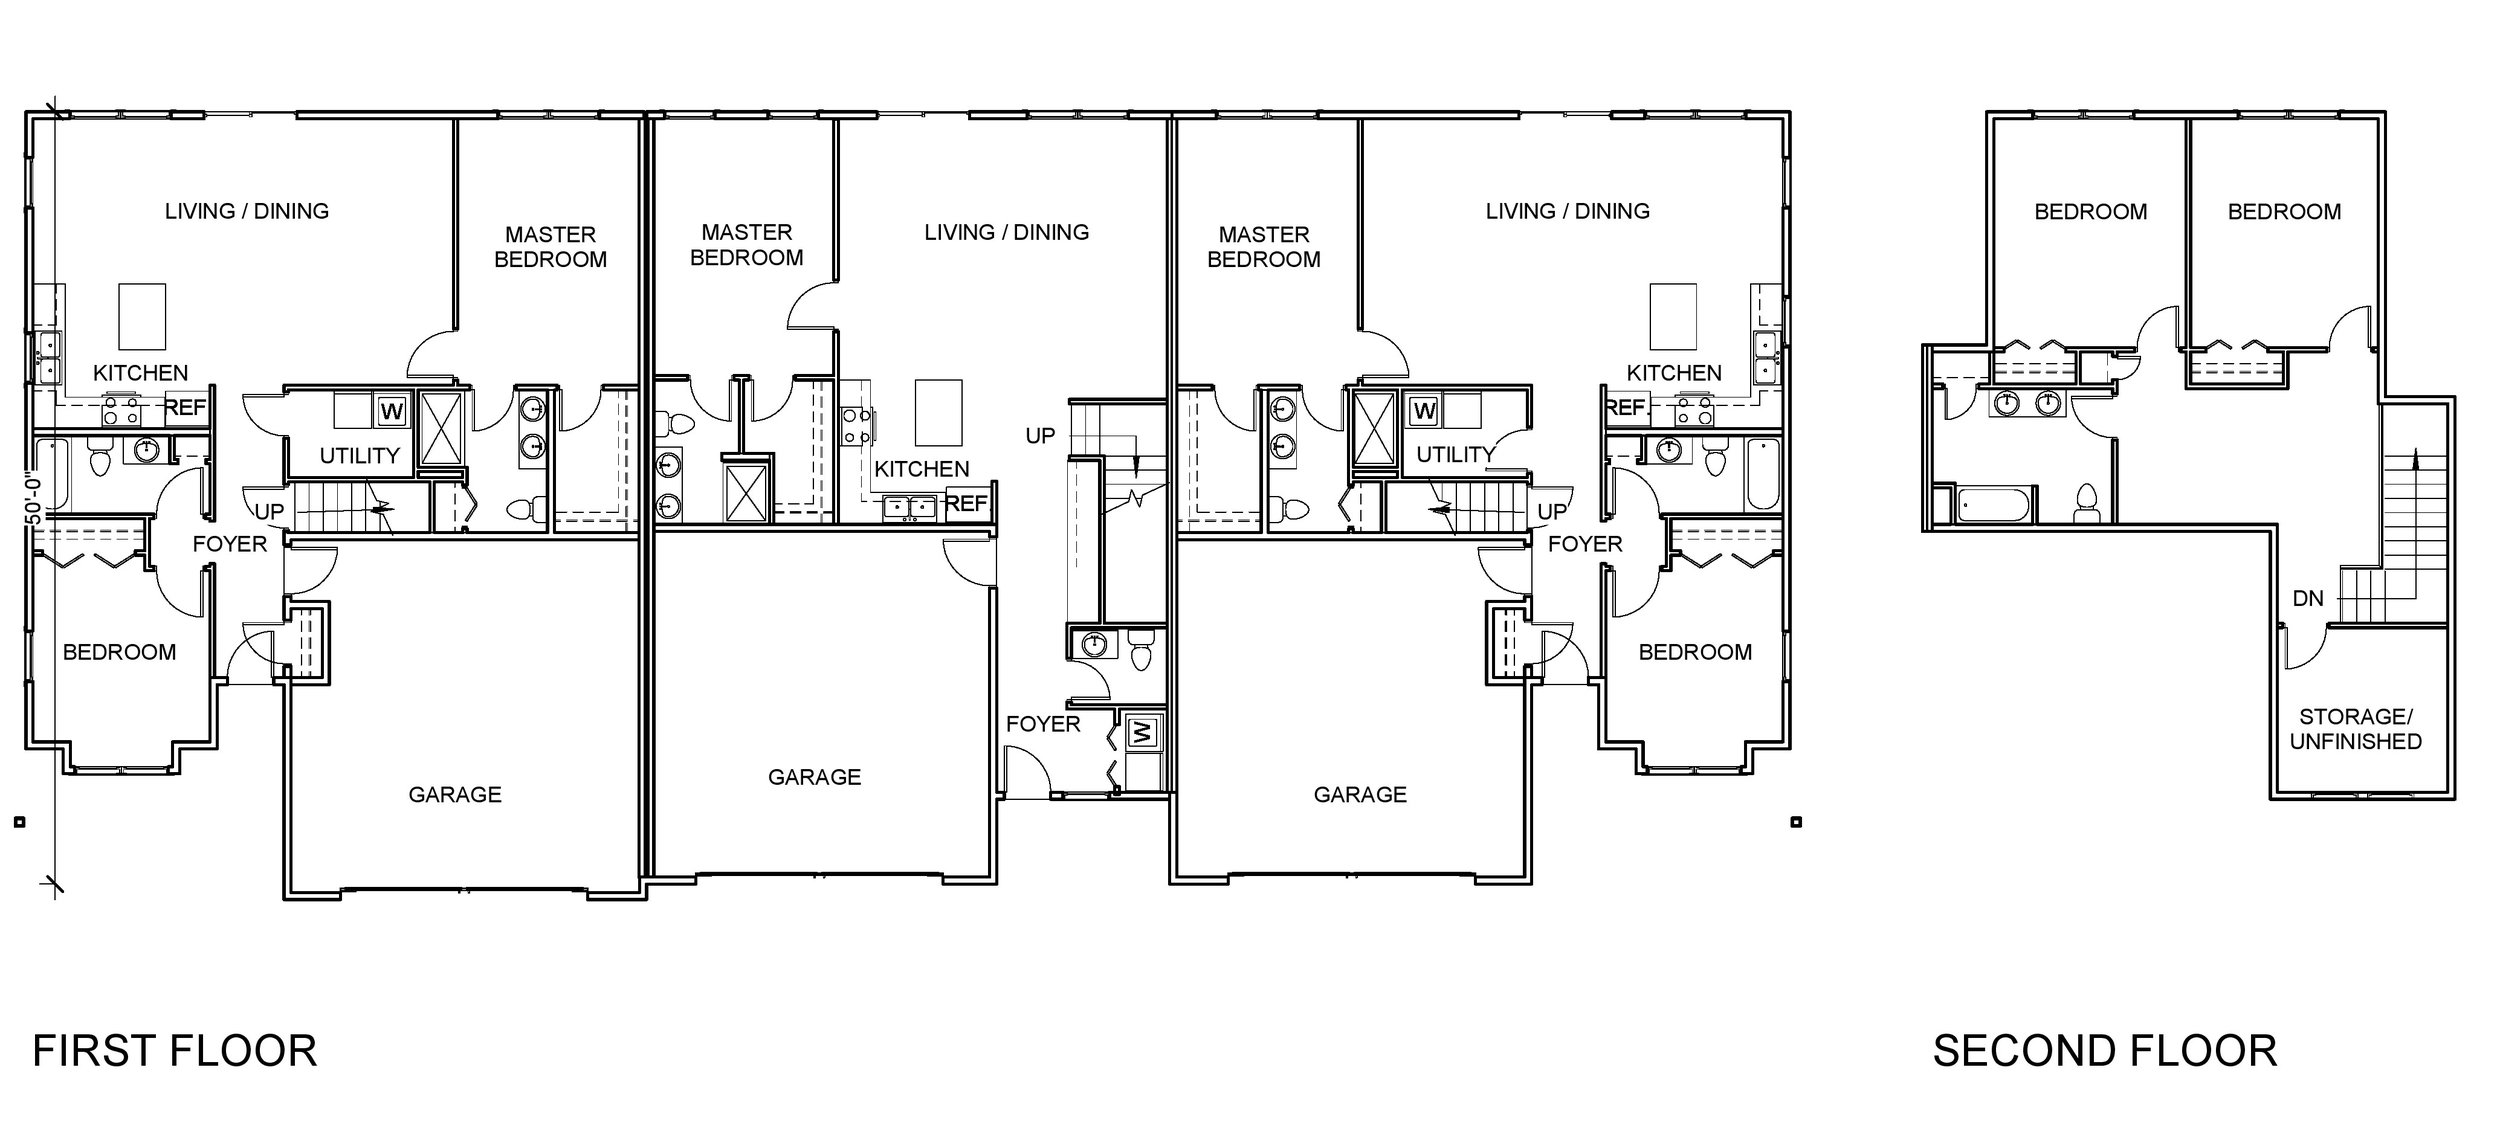 3-Unit Multi Story floor plan.jpg